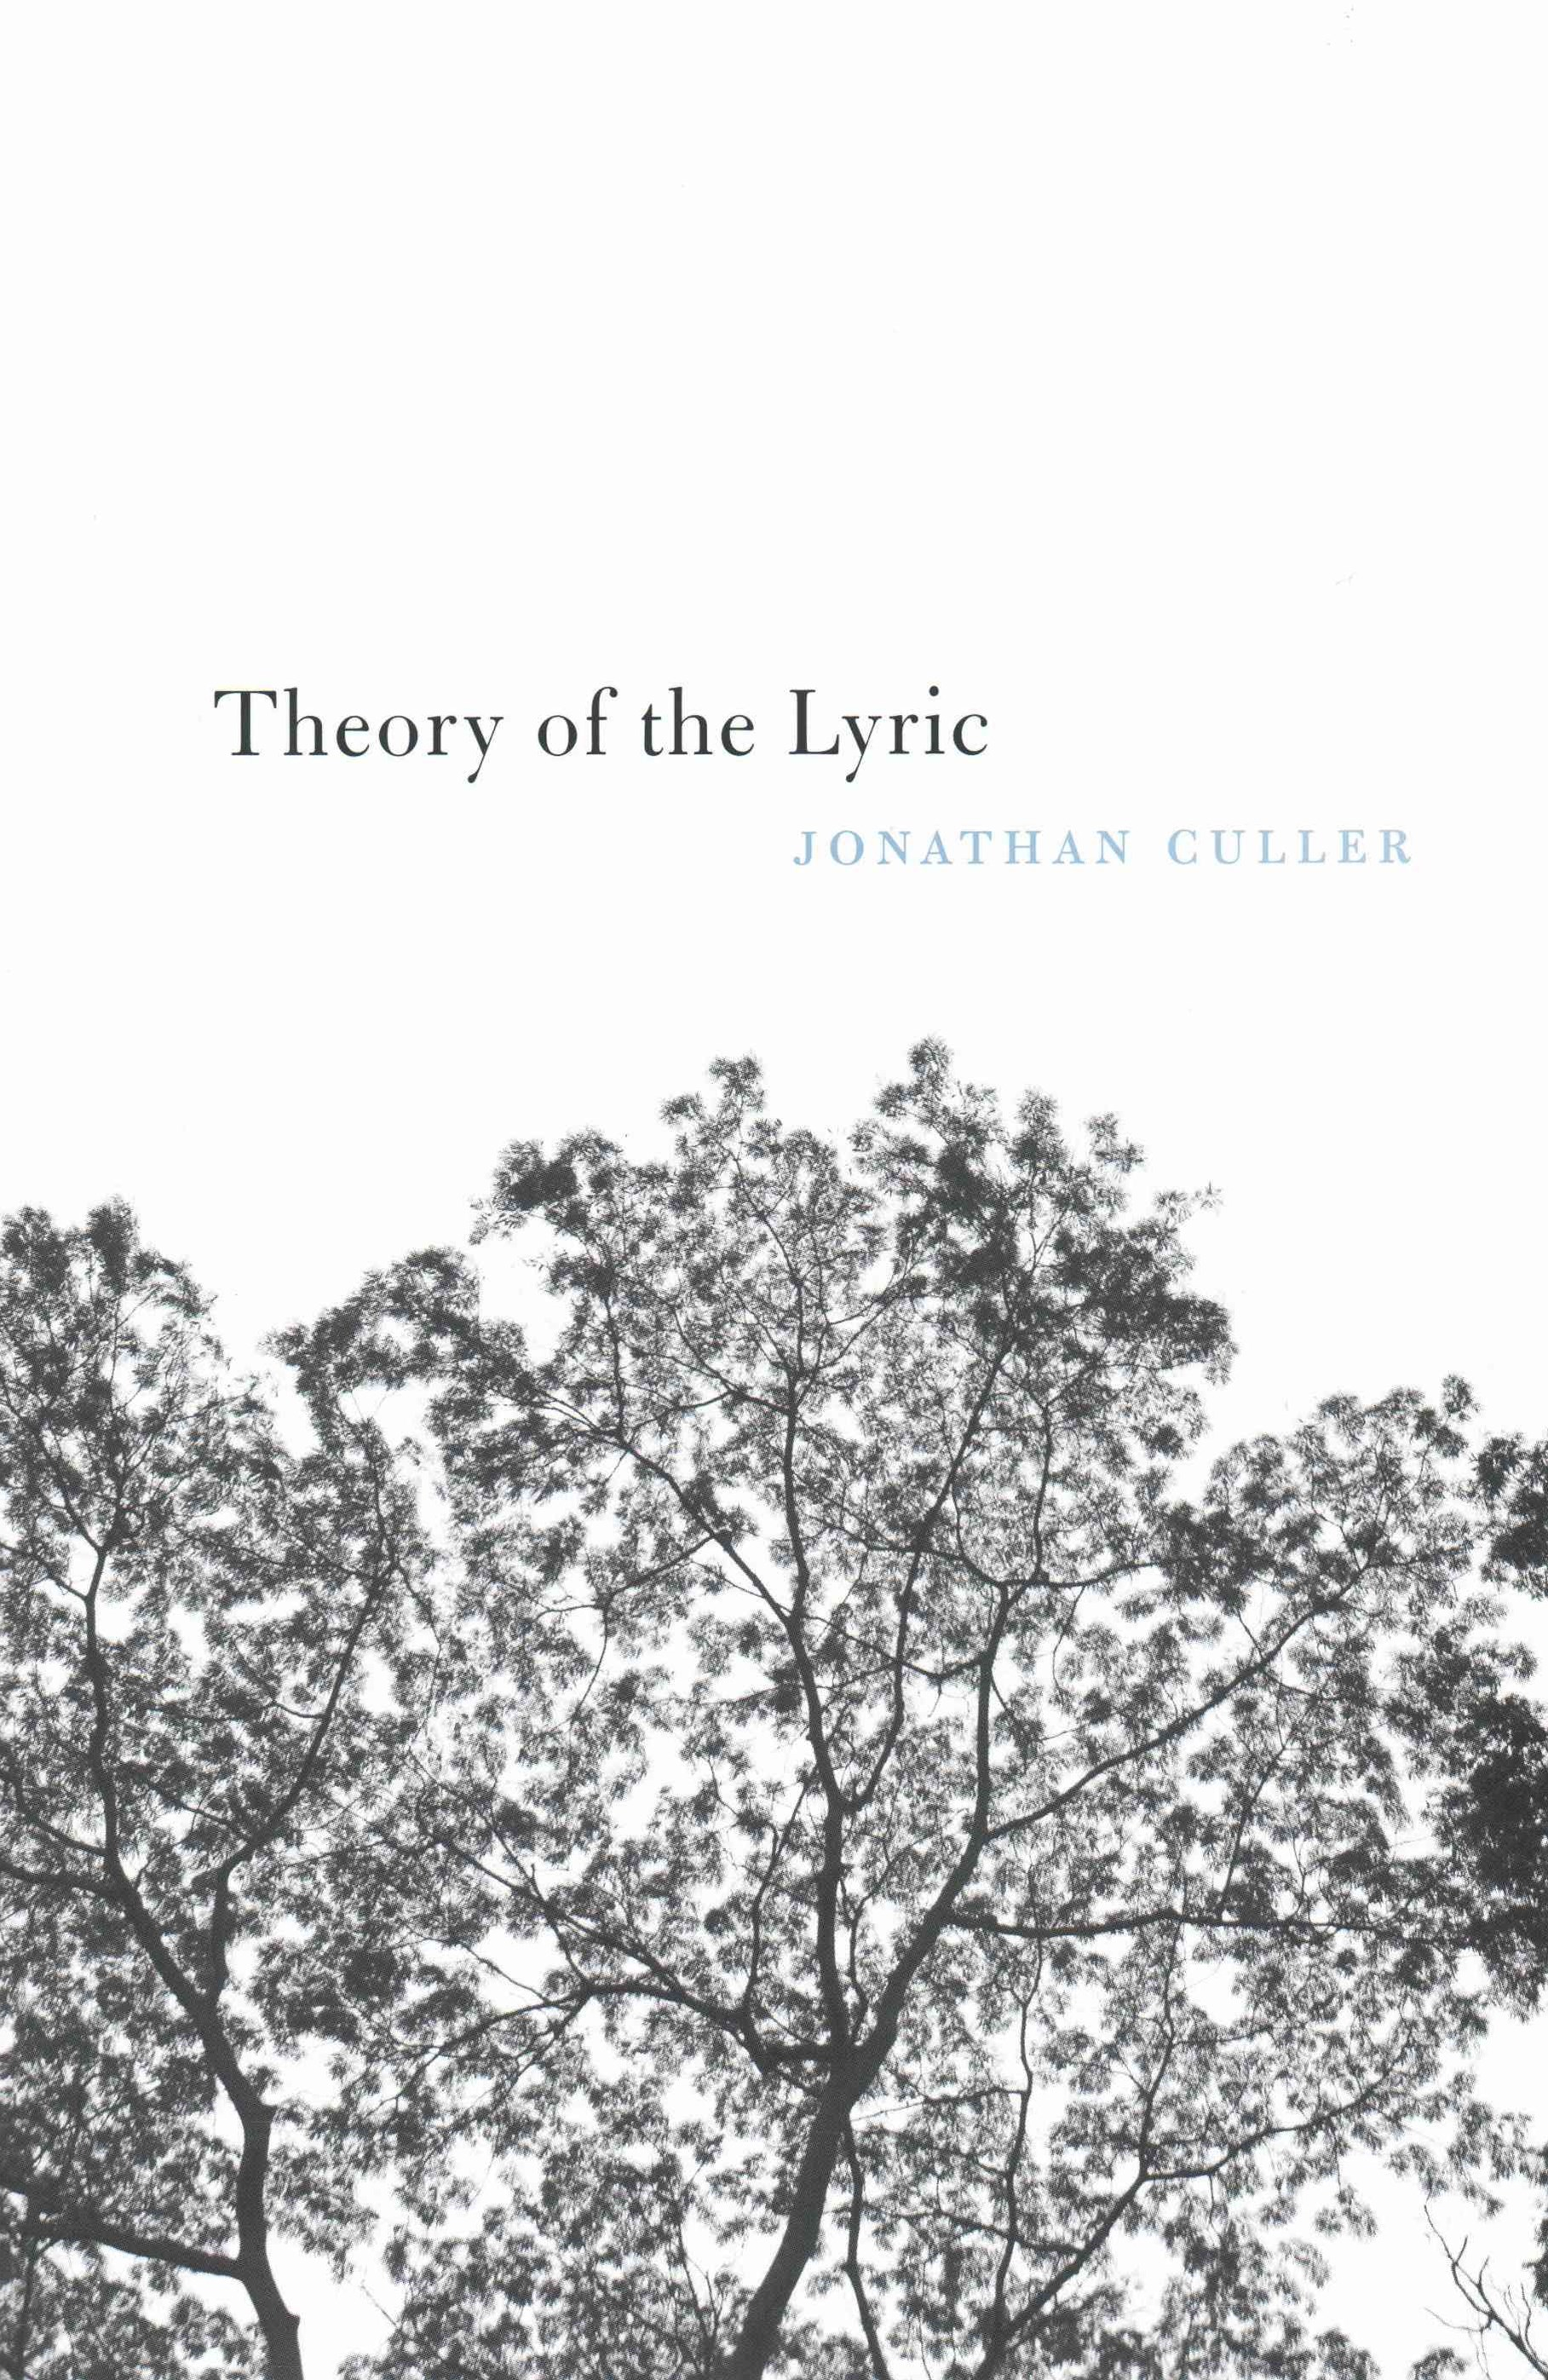 Theory of the Lyric